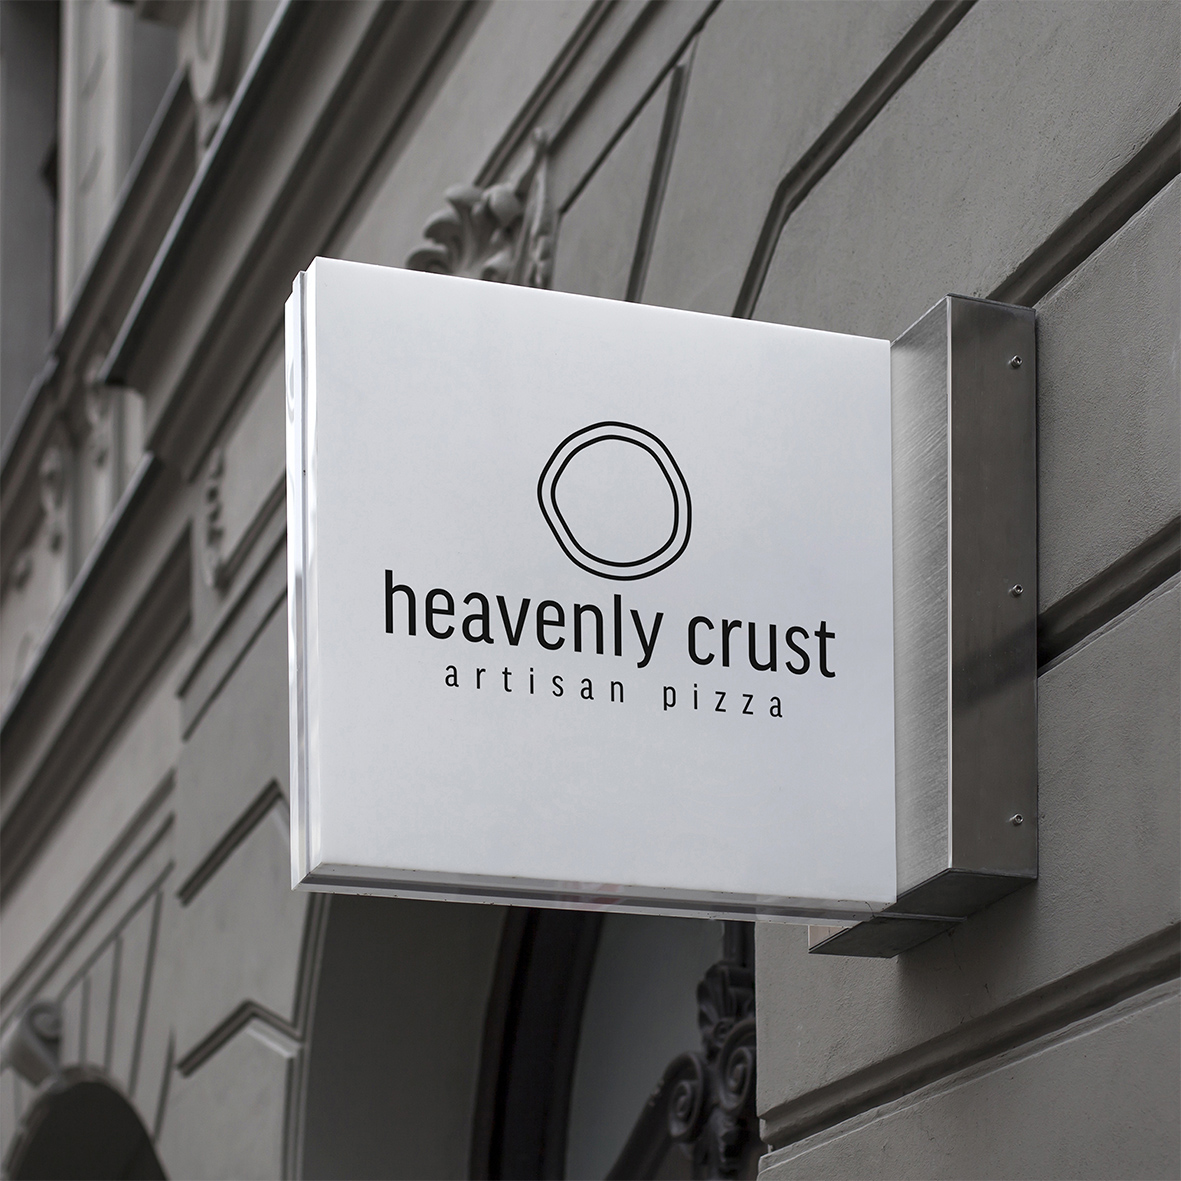 heavenly_crust_pizza_package_packaging_restaurant_identity_sign_logo